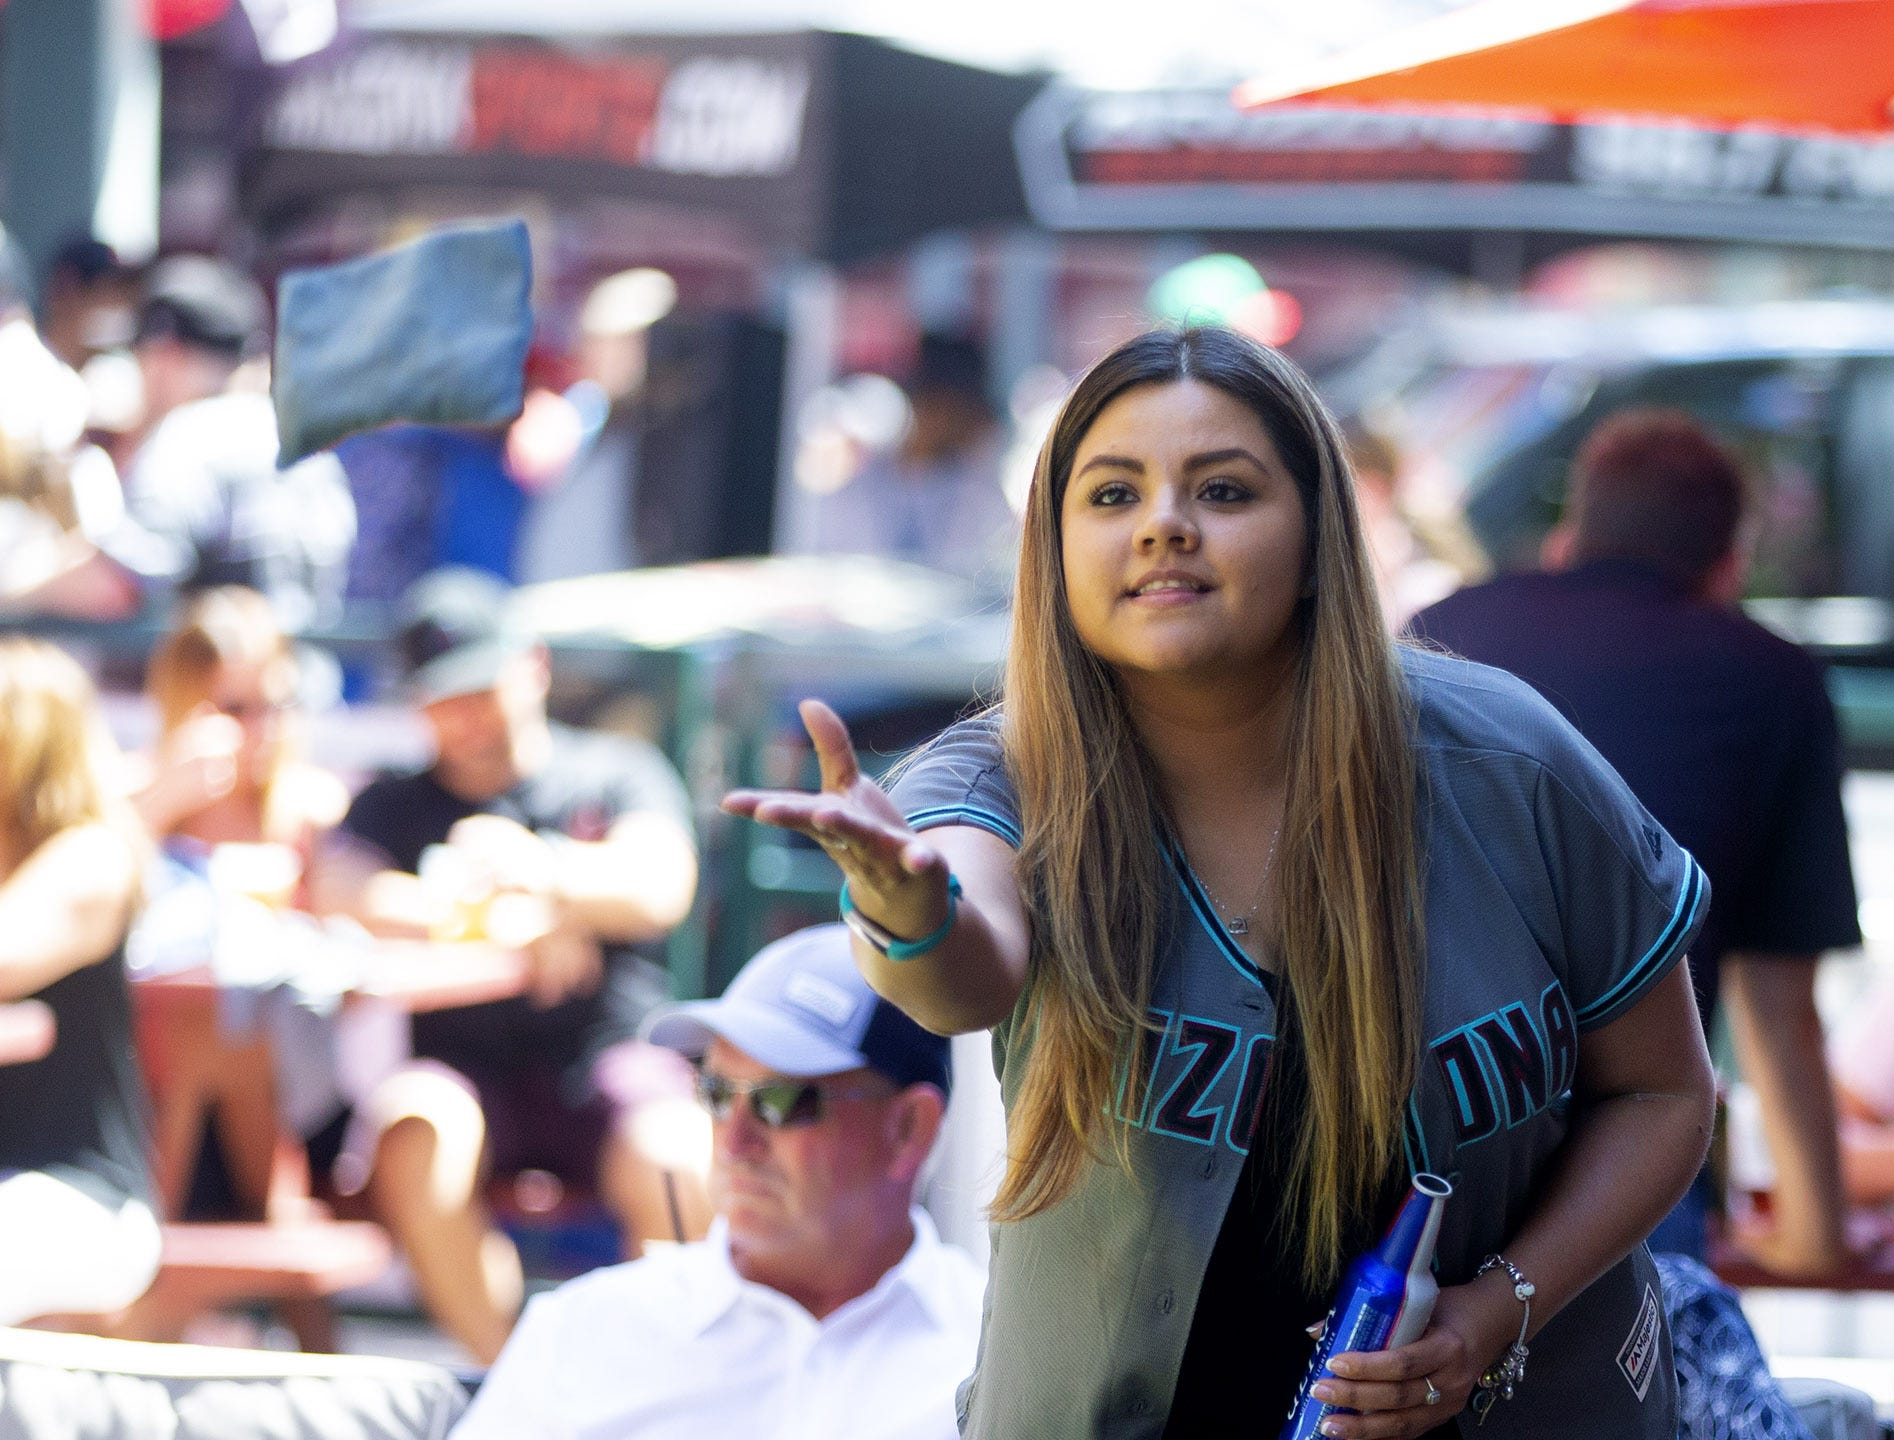 Roxanna Higuera, from Douglas, plays corn hole during Opening Day street festival at Chase Field in Phoenix on April 5.